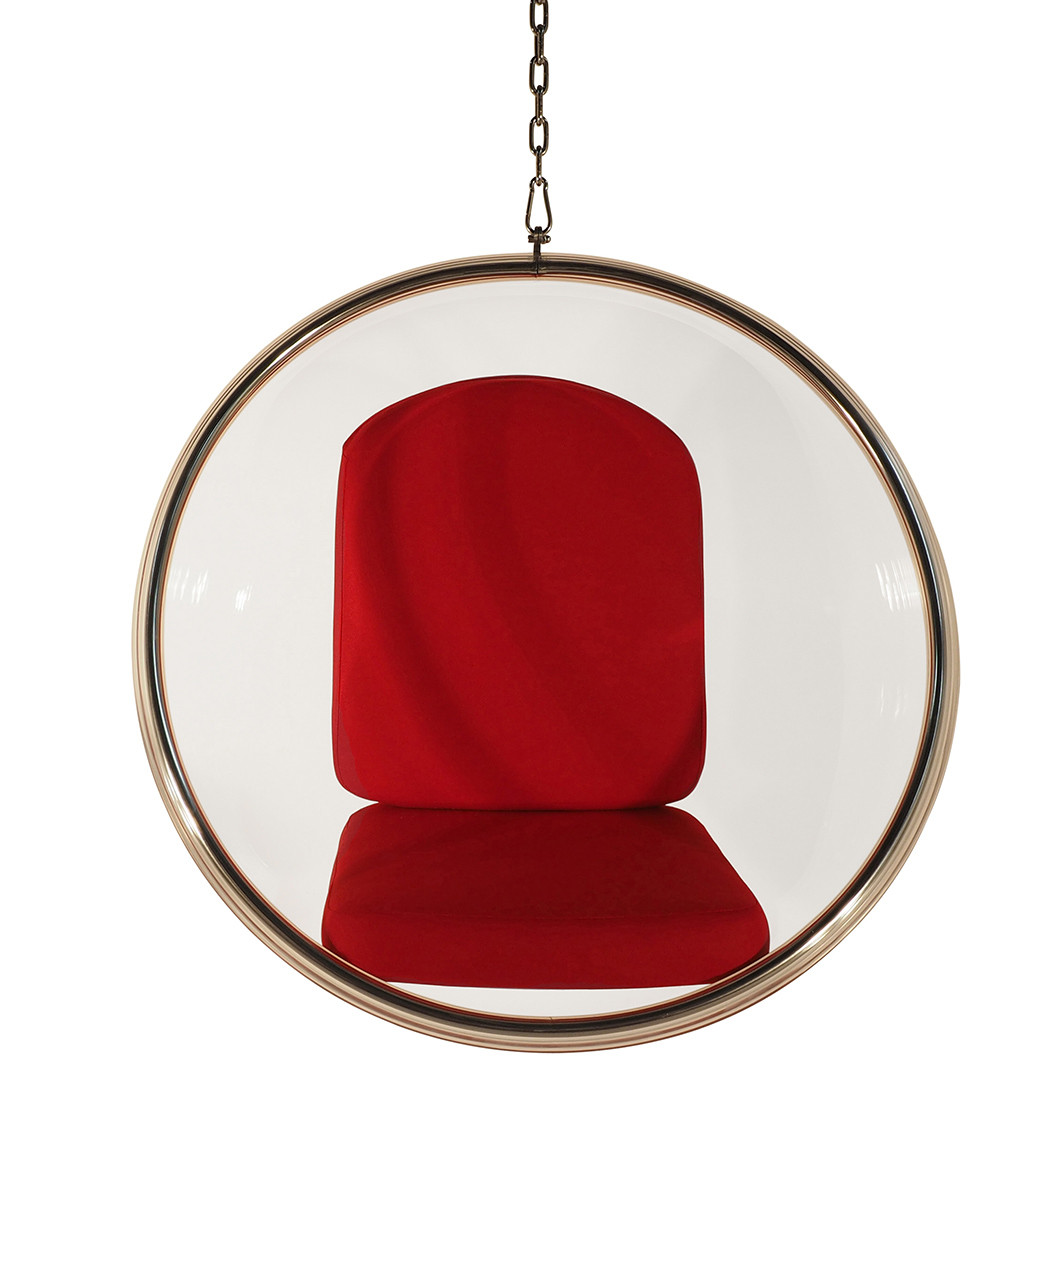 Replica eero aarnio eero aarnio replica hanging chair replica ball chair hanging chair - Bubble chair replica ...